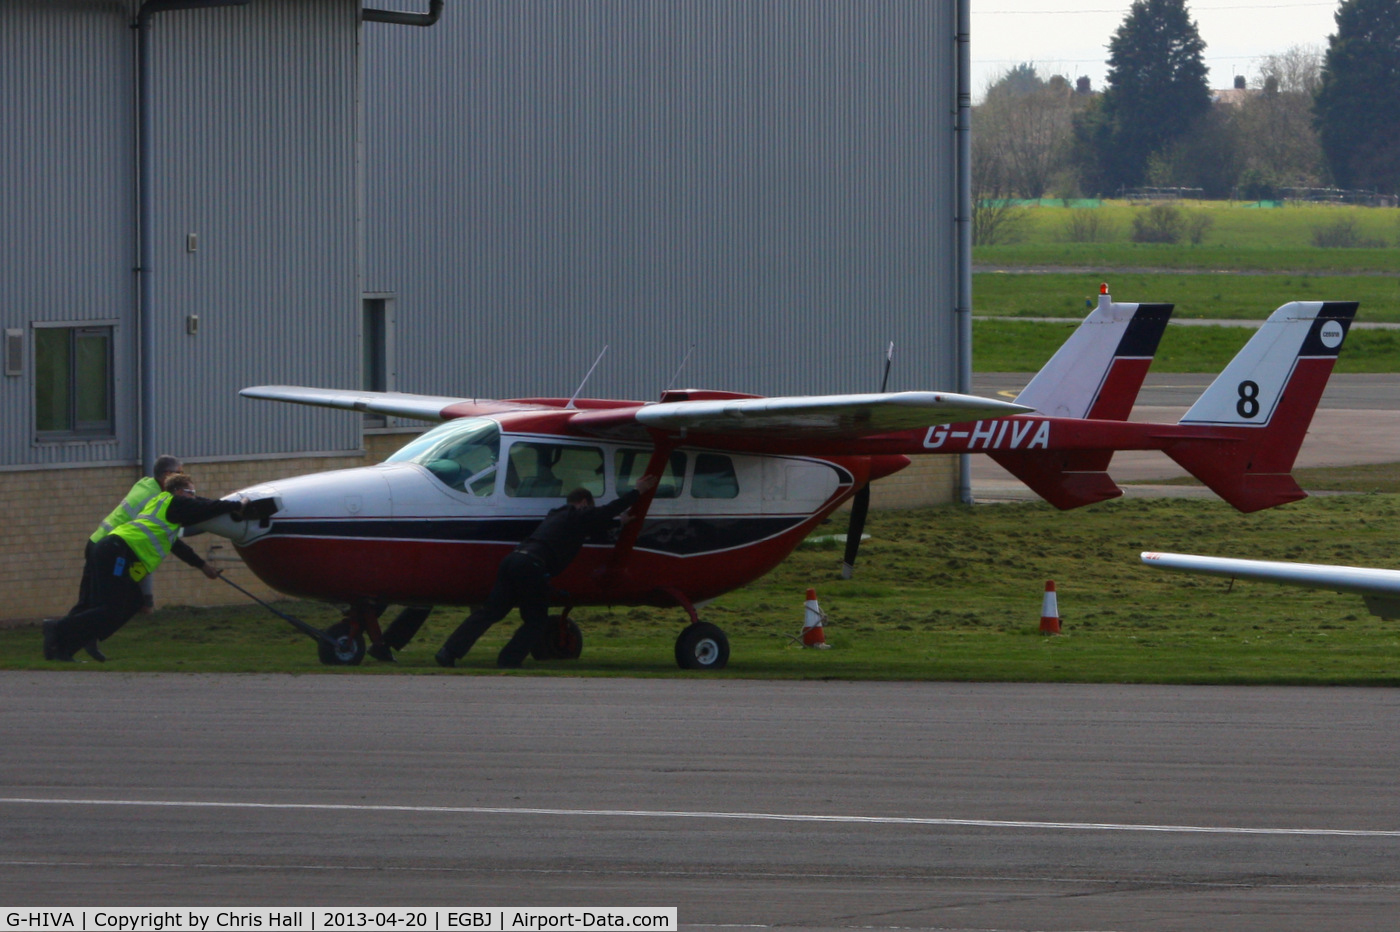 G-HIVA, 1966 Cessna 337A Super Skymaster C/N 337-0429, privately owned